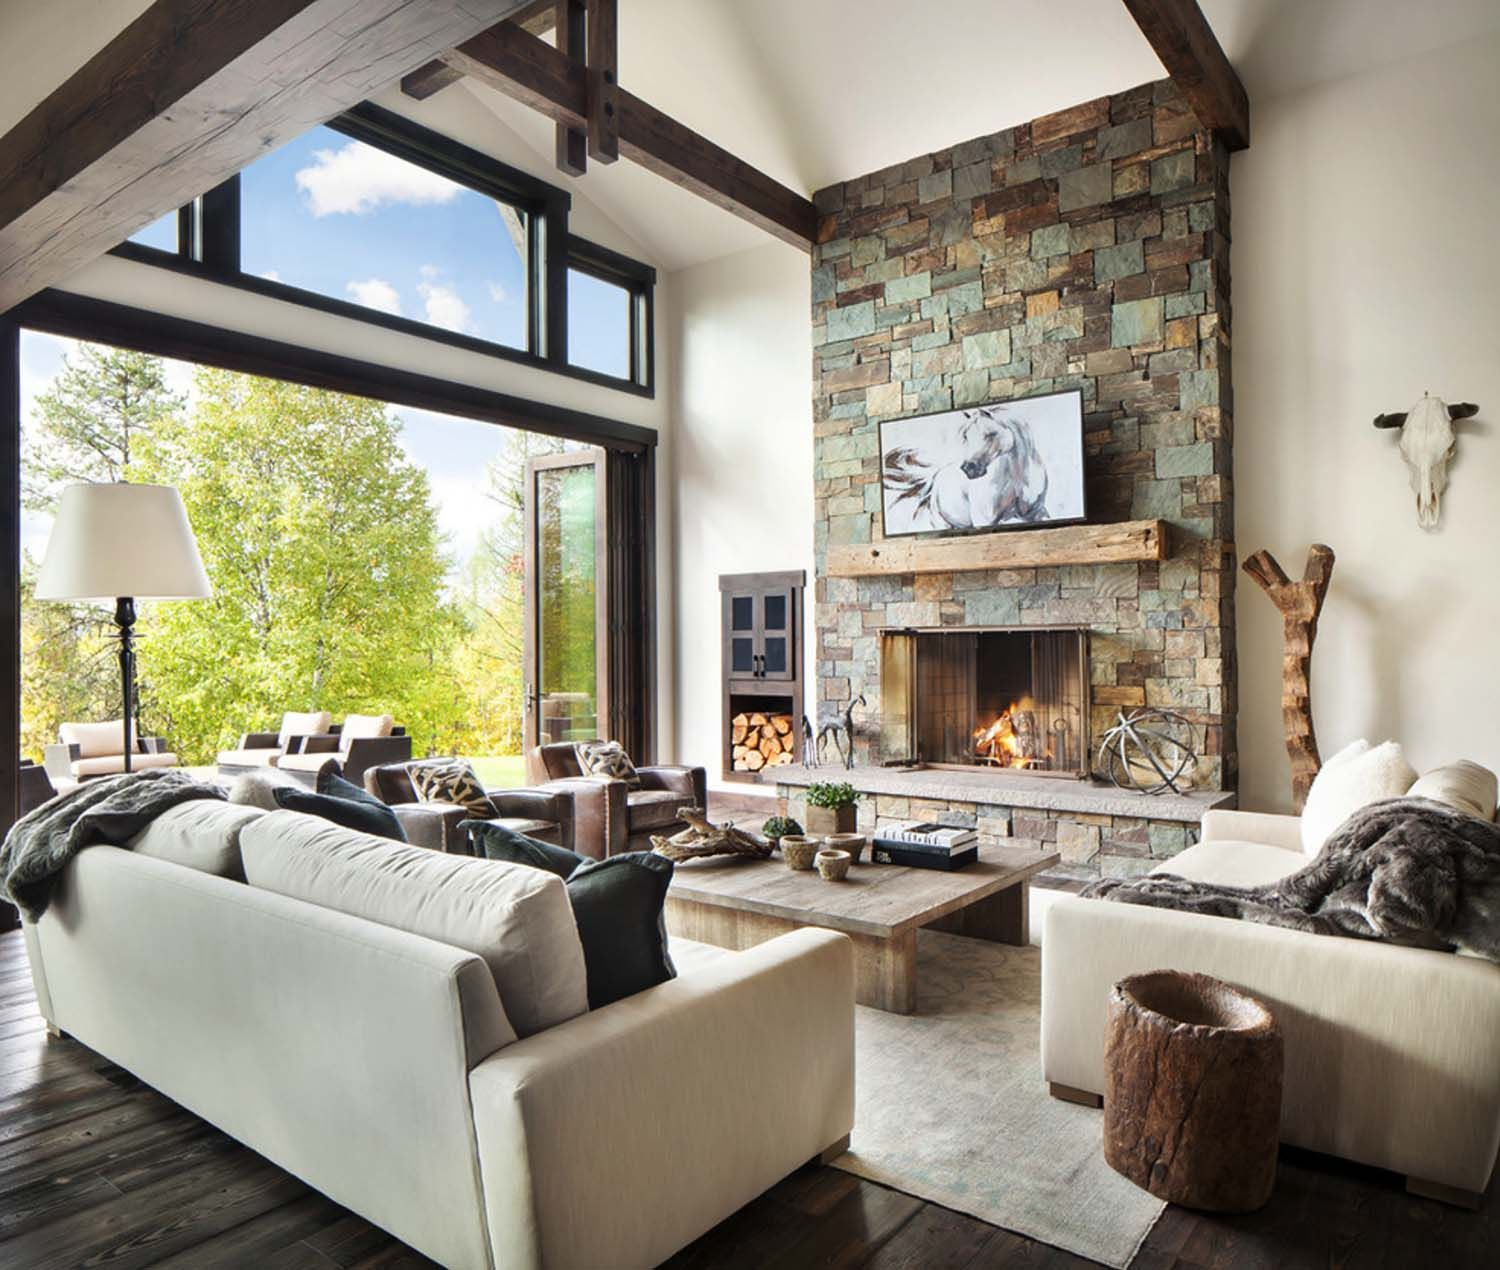 Rustic-modern Dwelling Nestled In The Northern Rocky